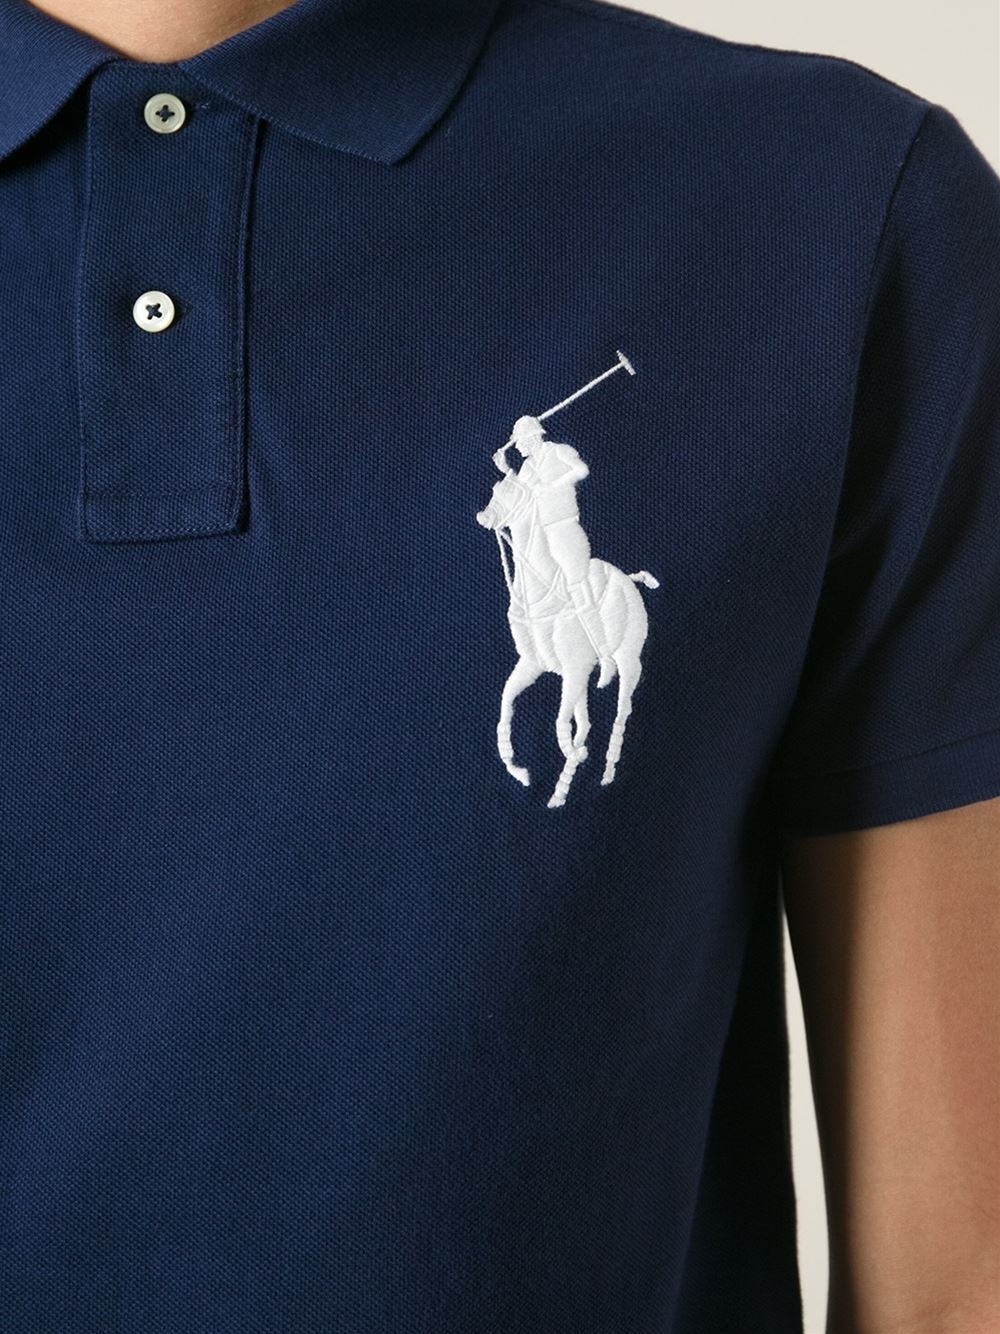 Polo shirt logos for Polo shirts with logos